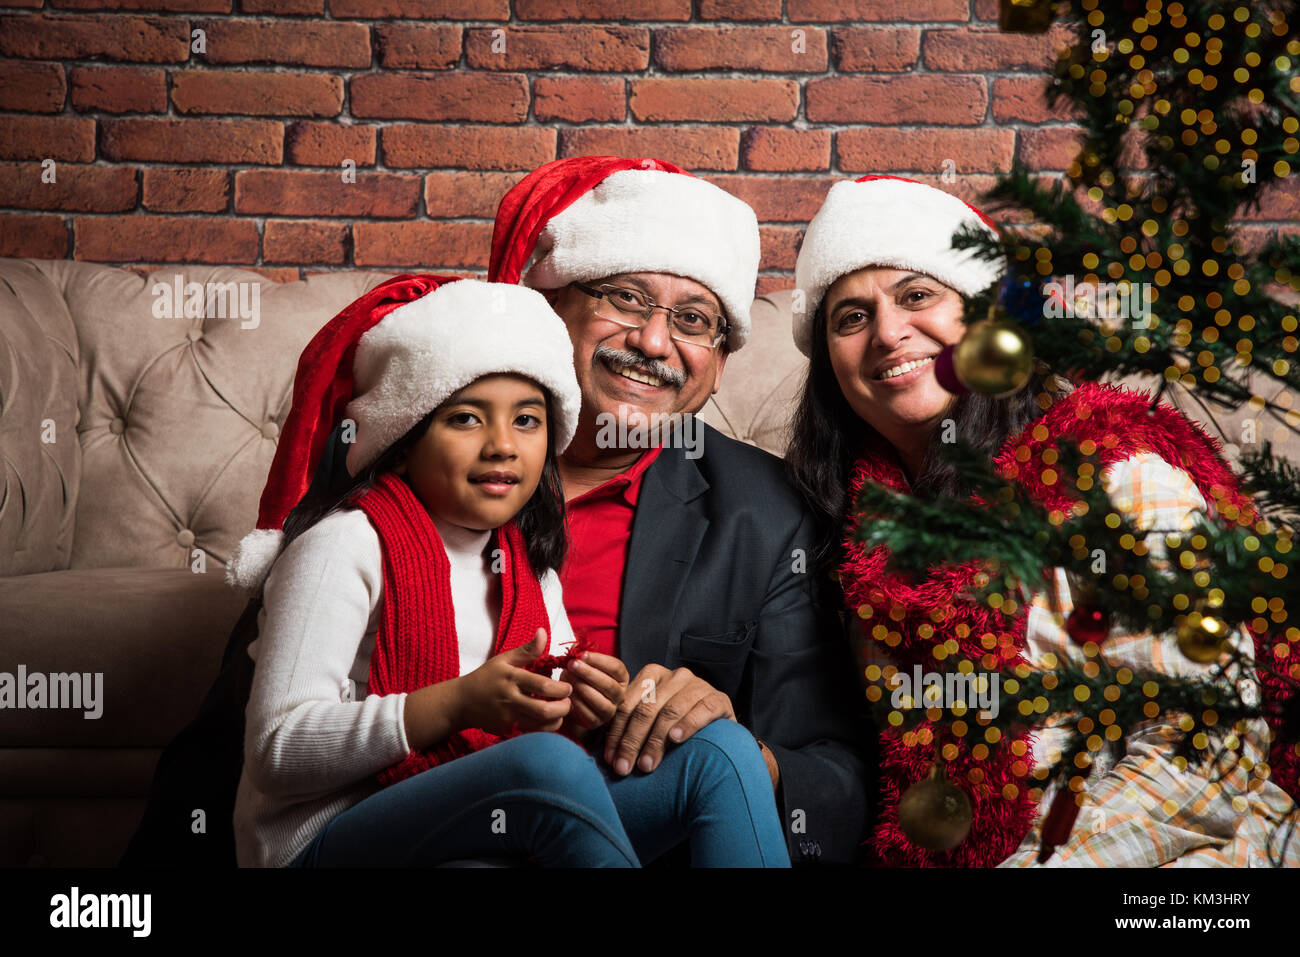 christmas hindu single men The definitive single mens' guide to living the dream of a location independent  the single dude's guide to life  merry christmas to all of our readers and.